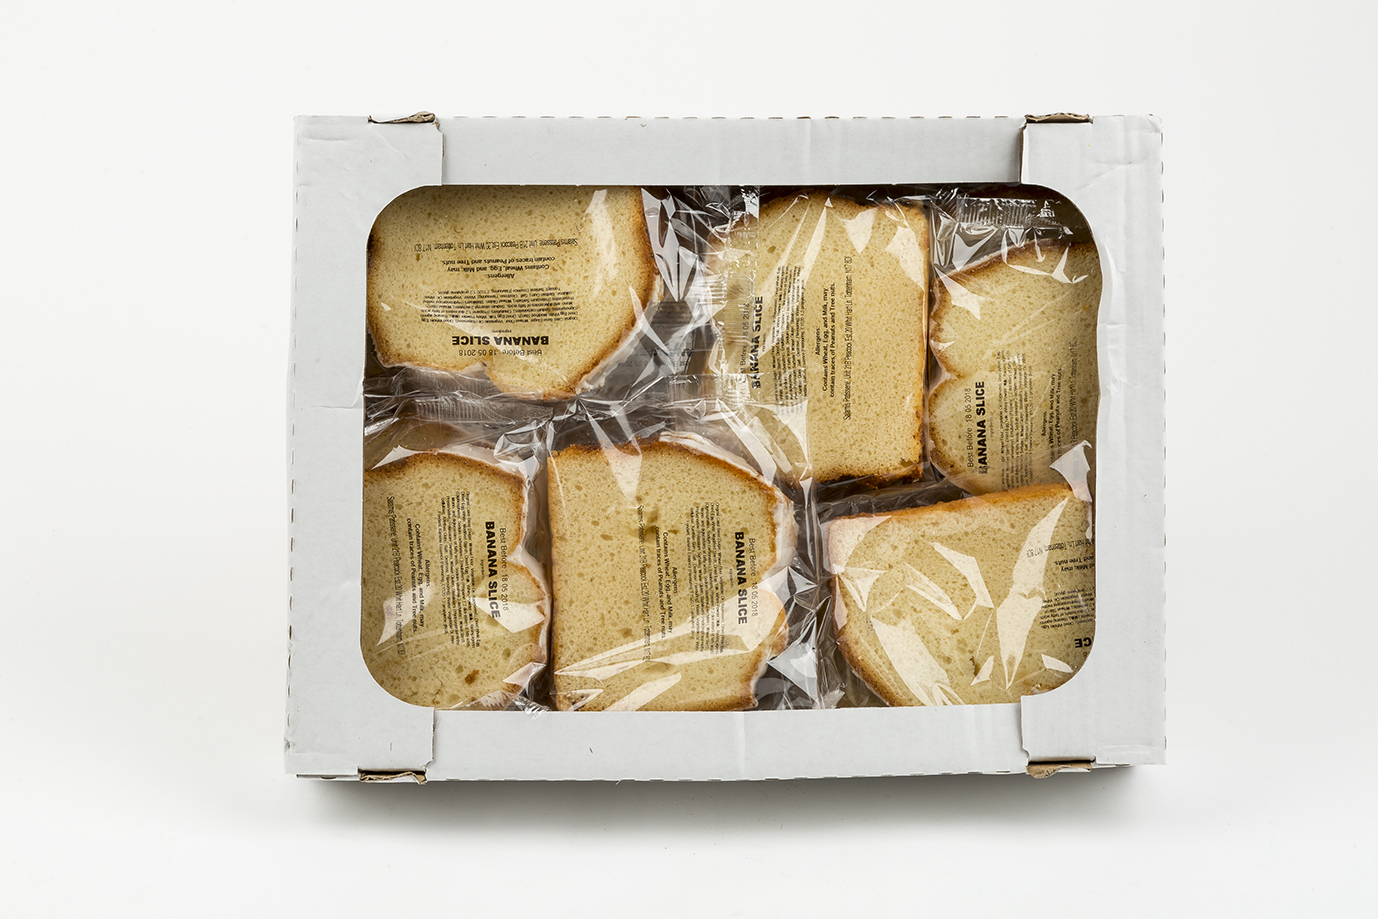 Image of Box of wrapped Banana cake slices x 18